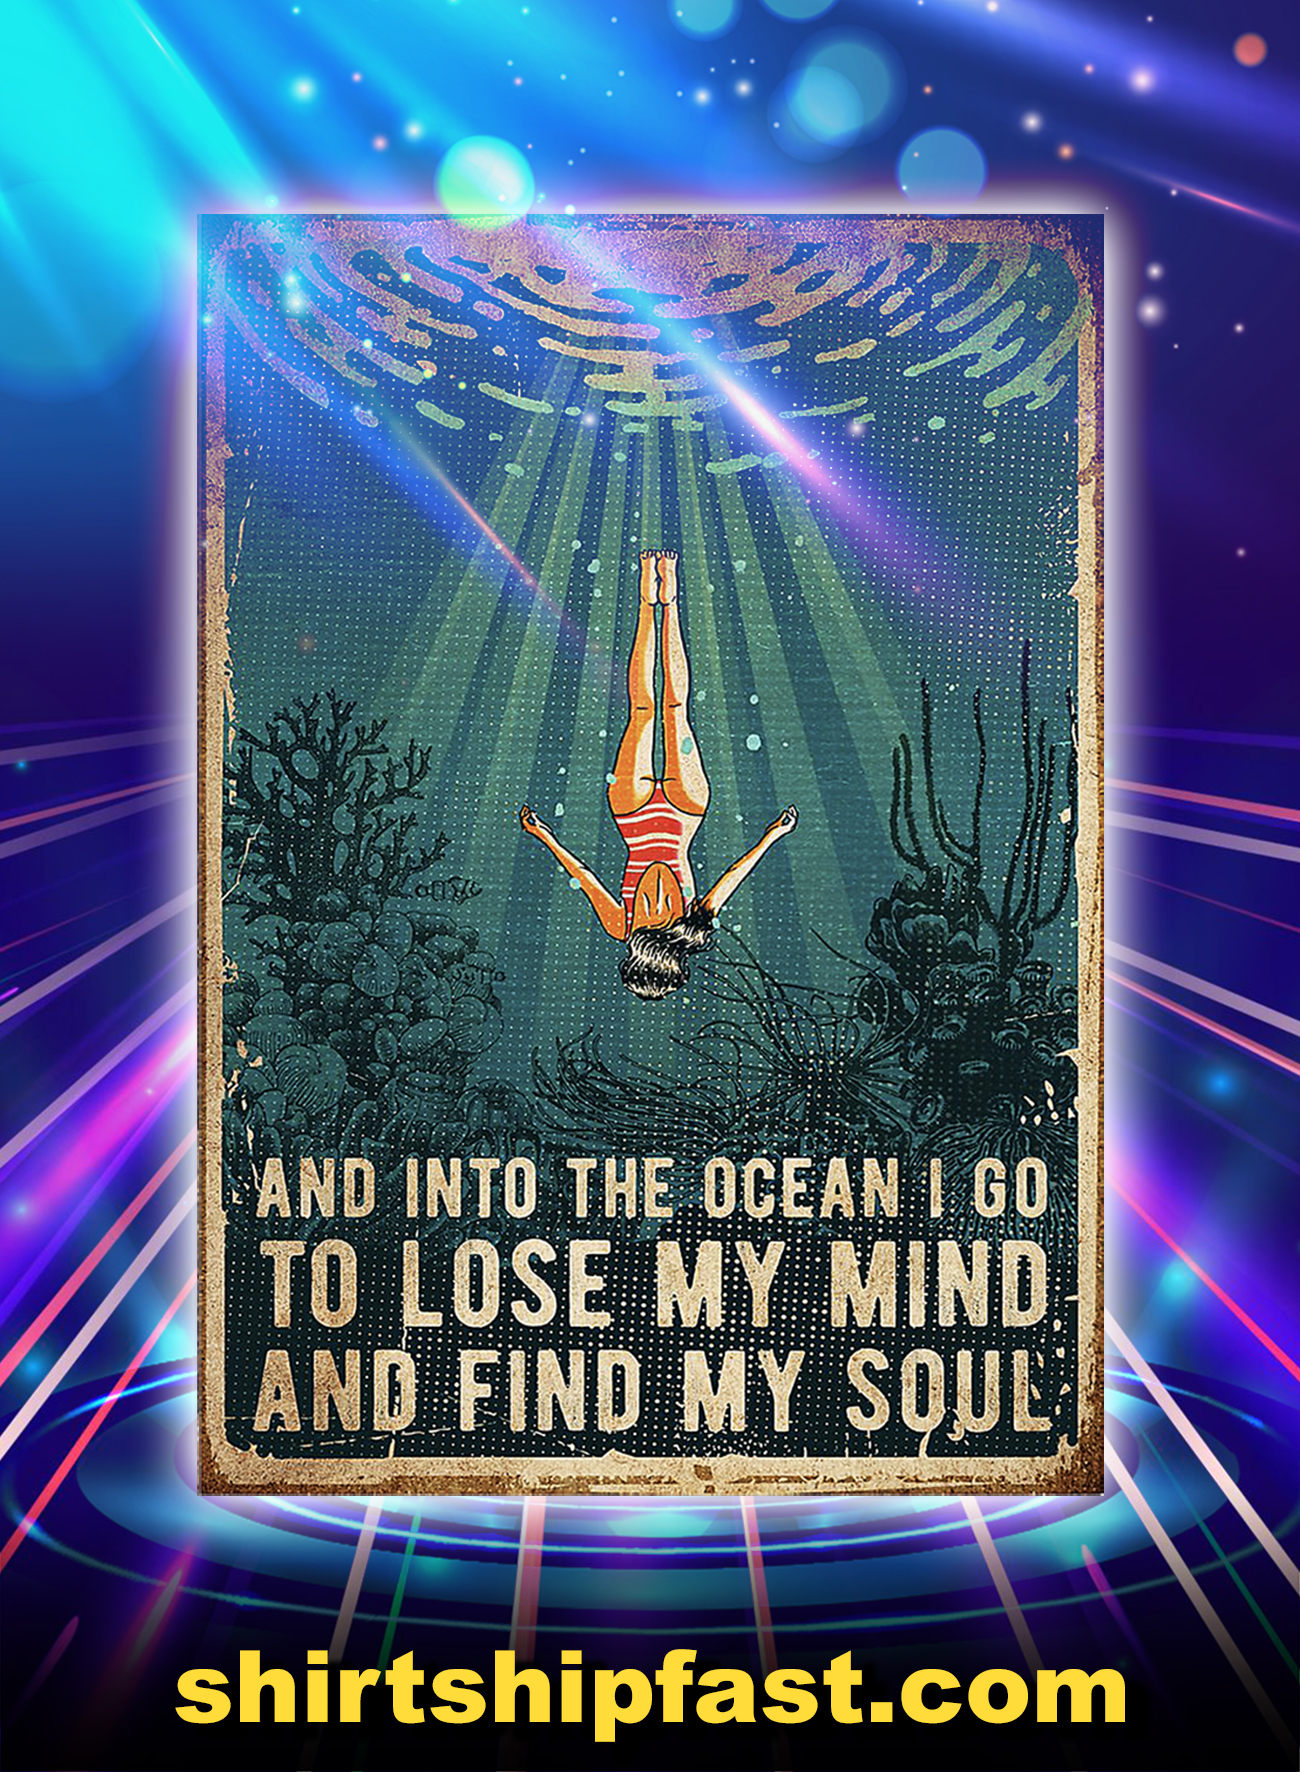 Swimming and into the ocean i go to lose my mind and find my soul poster - A1